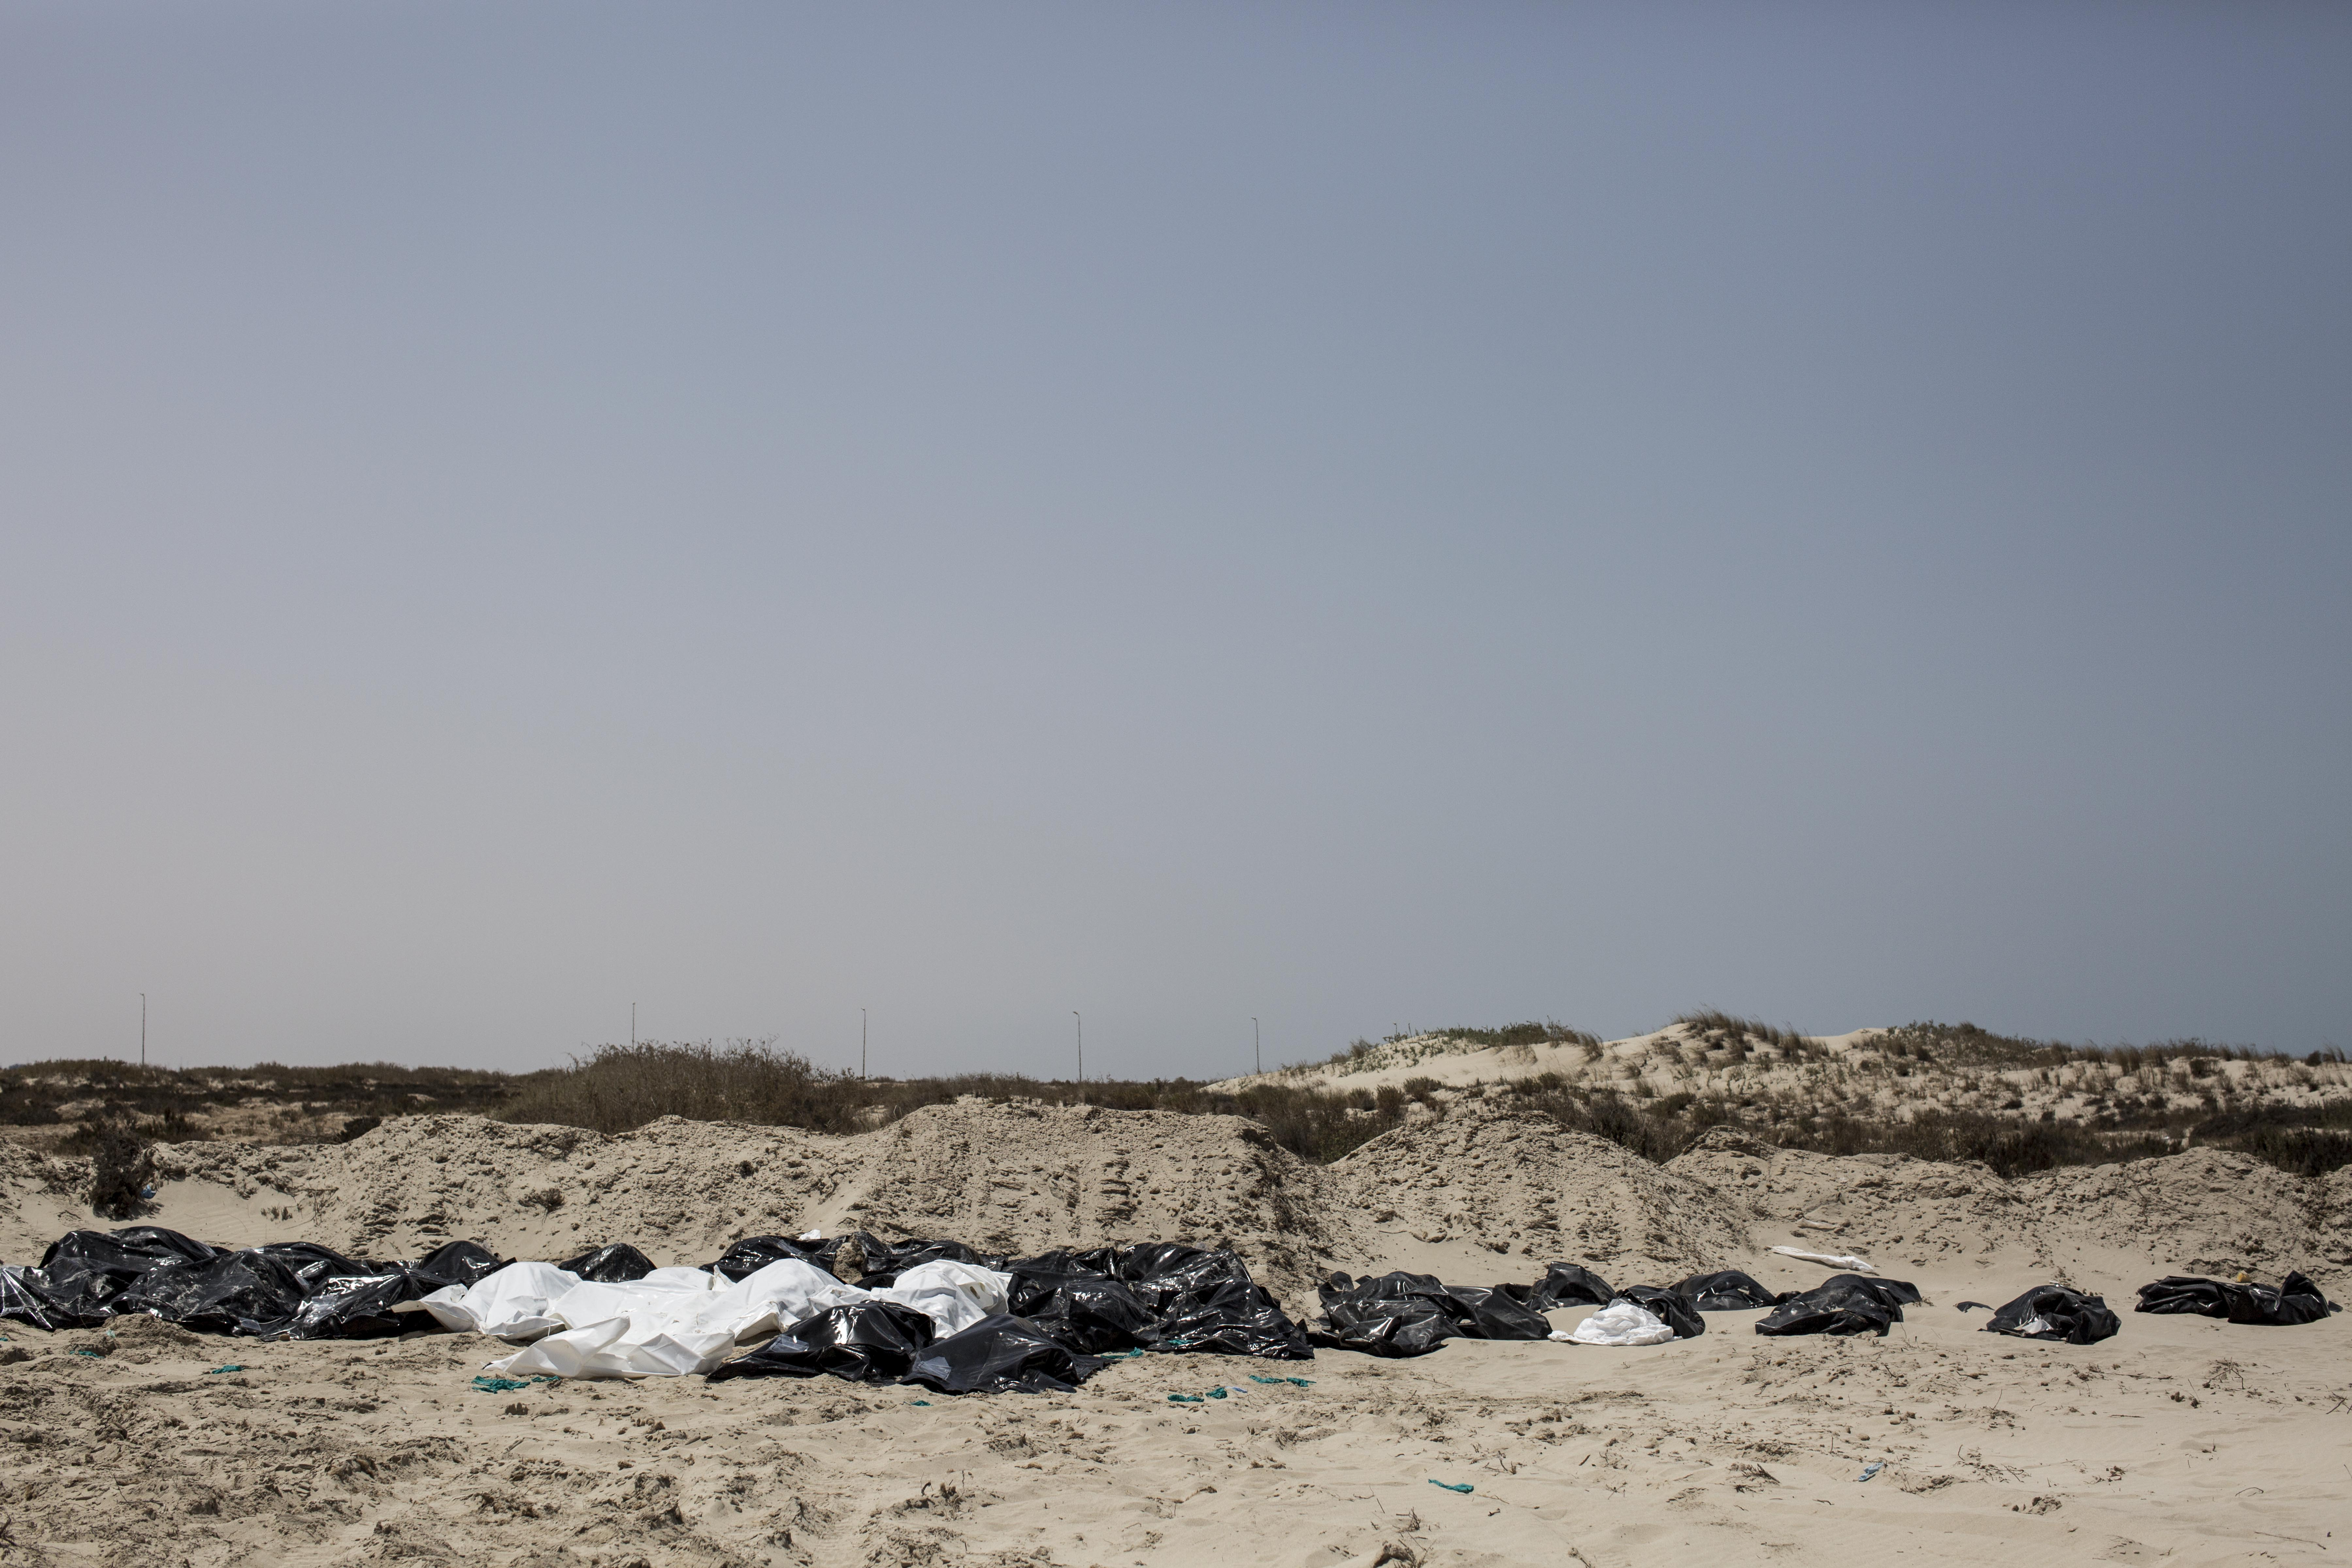 The bodies of dead migrants are lined up for burial at an improvised graveyard in Abu Kammash, Libya.